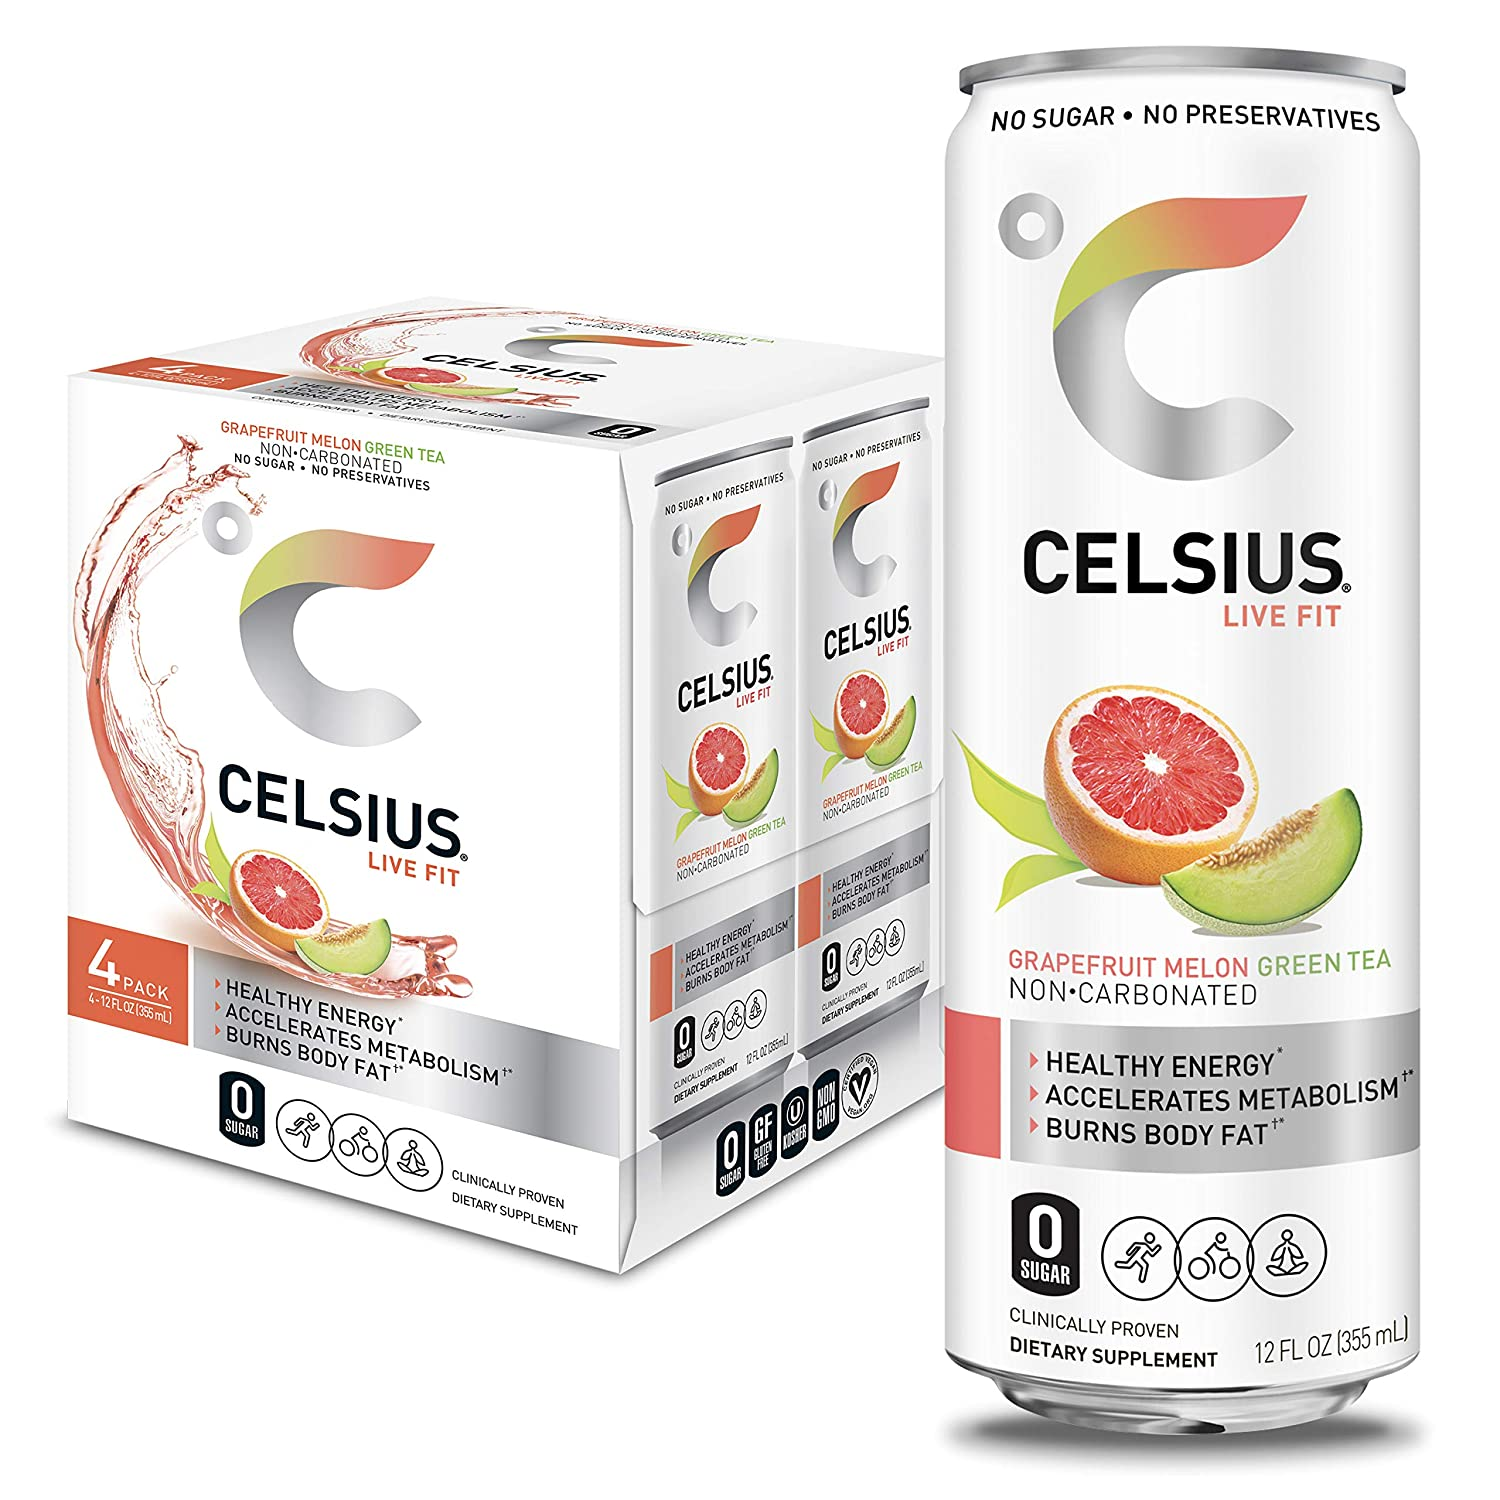 CELSIUS Grapefruit Melon Green Tea Non-Carbonated Fitness Drink